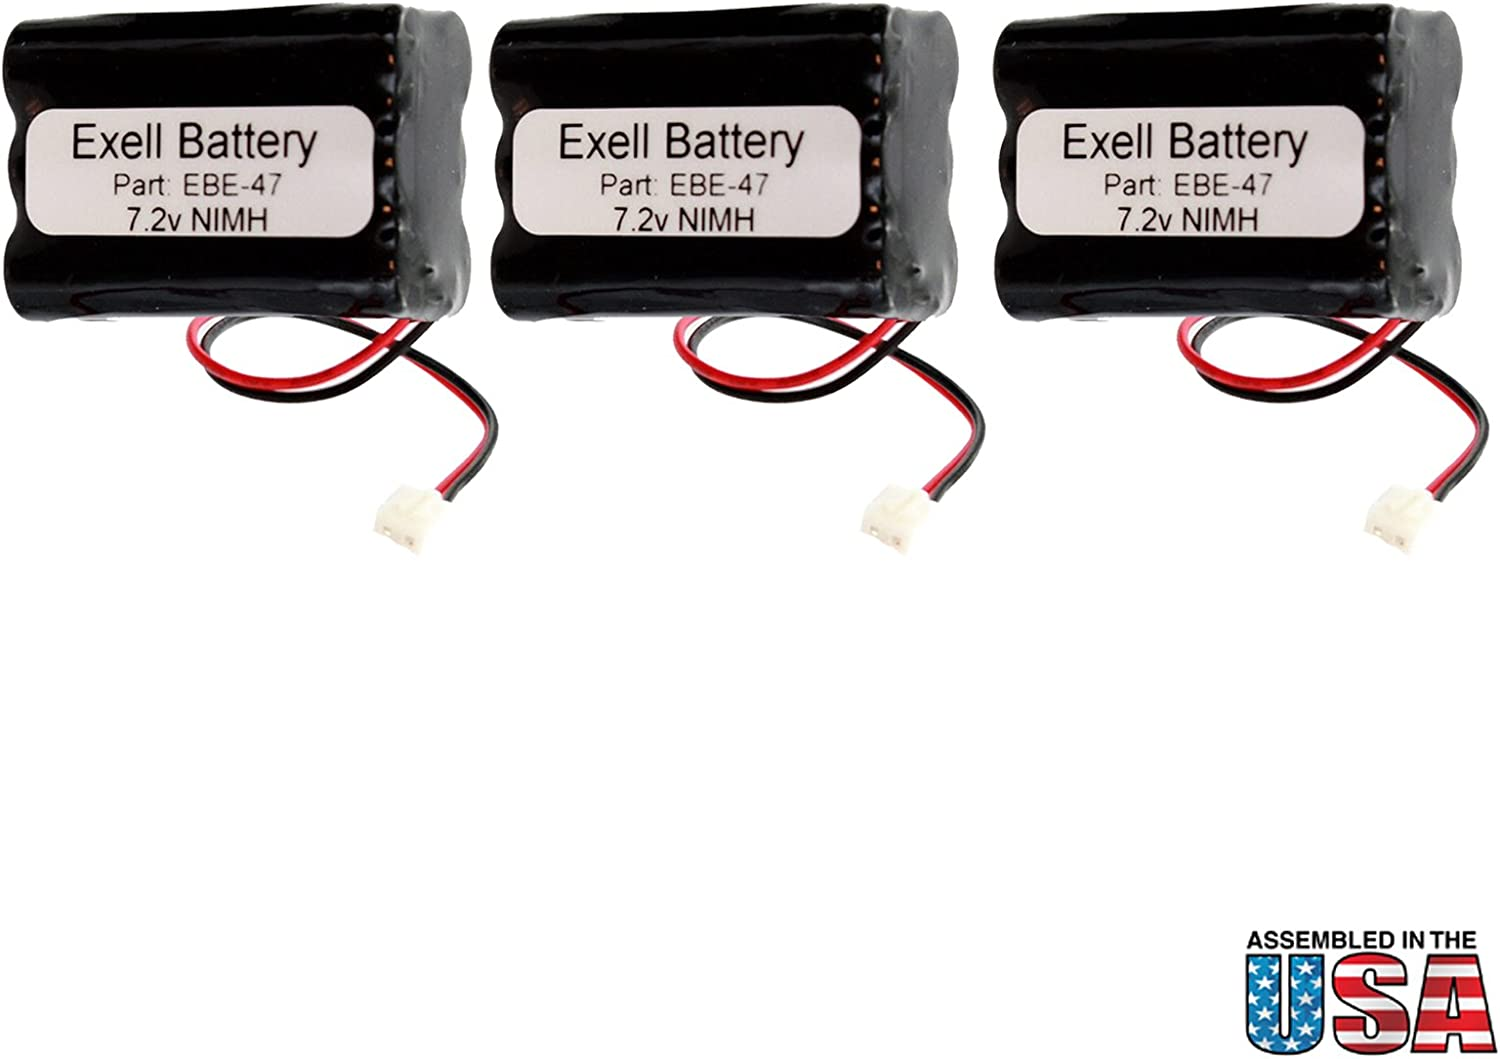 (3-Pack) Emergency/Exit Lighting Battery Fits and Replaces Interstate ANIC0191, Iti 34-051, Sanyo 34051, Sanyo 6HRAAAU, Sanyo 6HRAAAU34051 Fast USA Ship